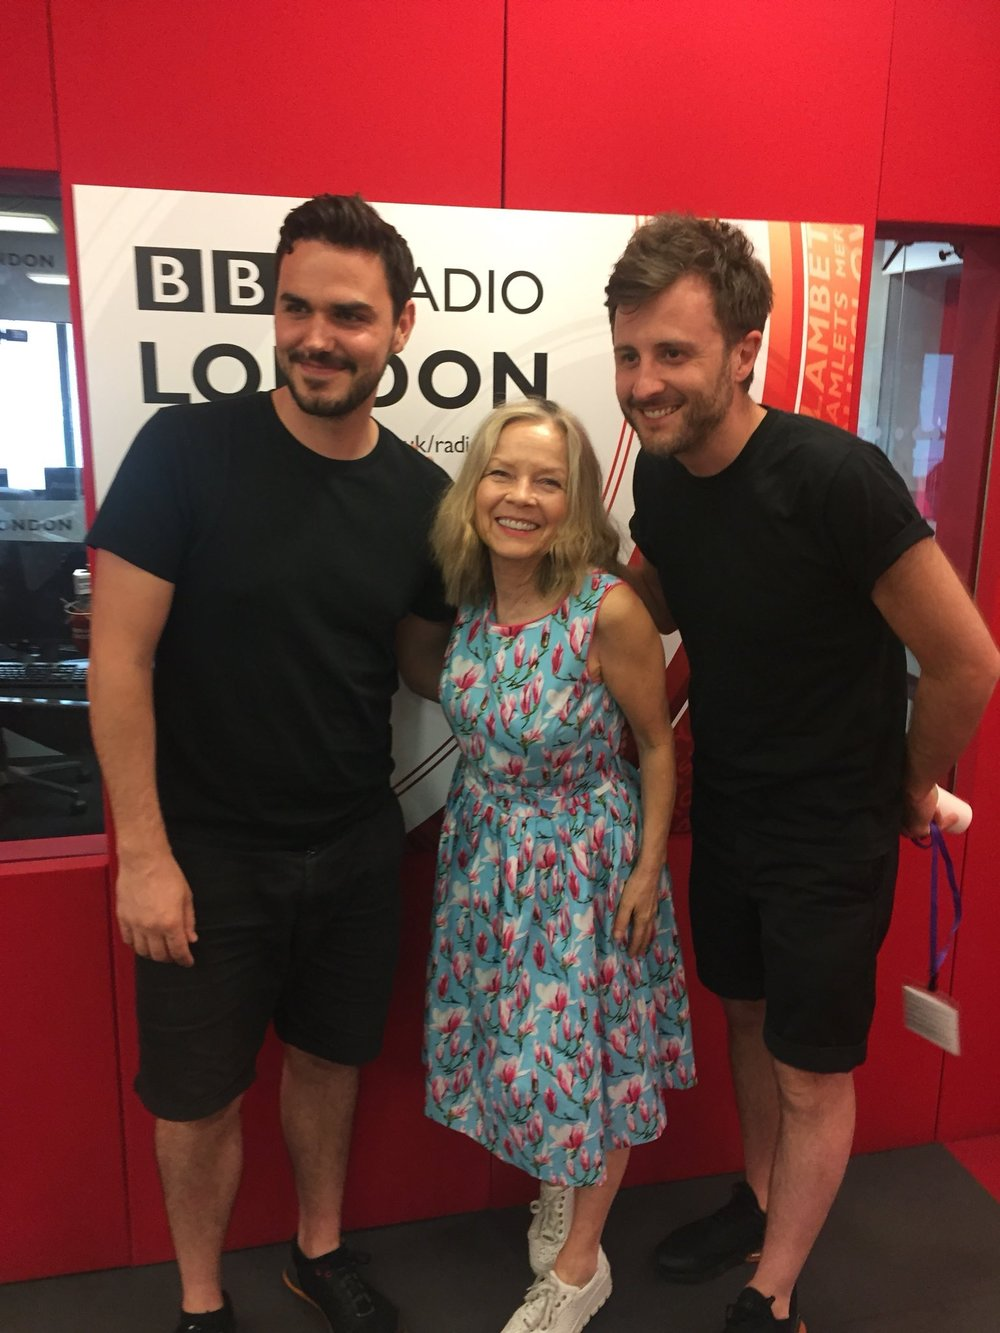 BOSH, BBC Radio London Jo Good, 8:5:18.JPG